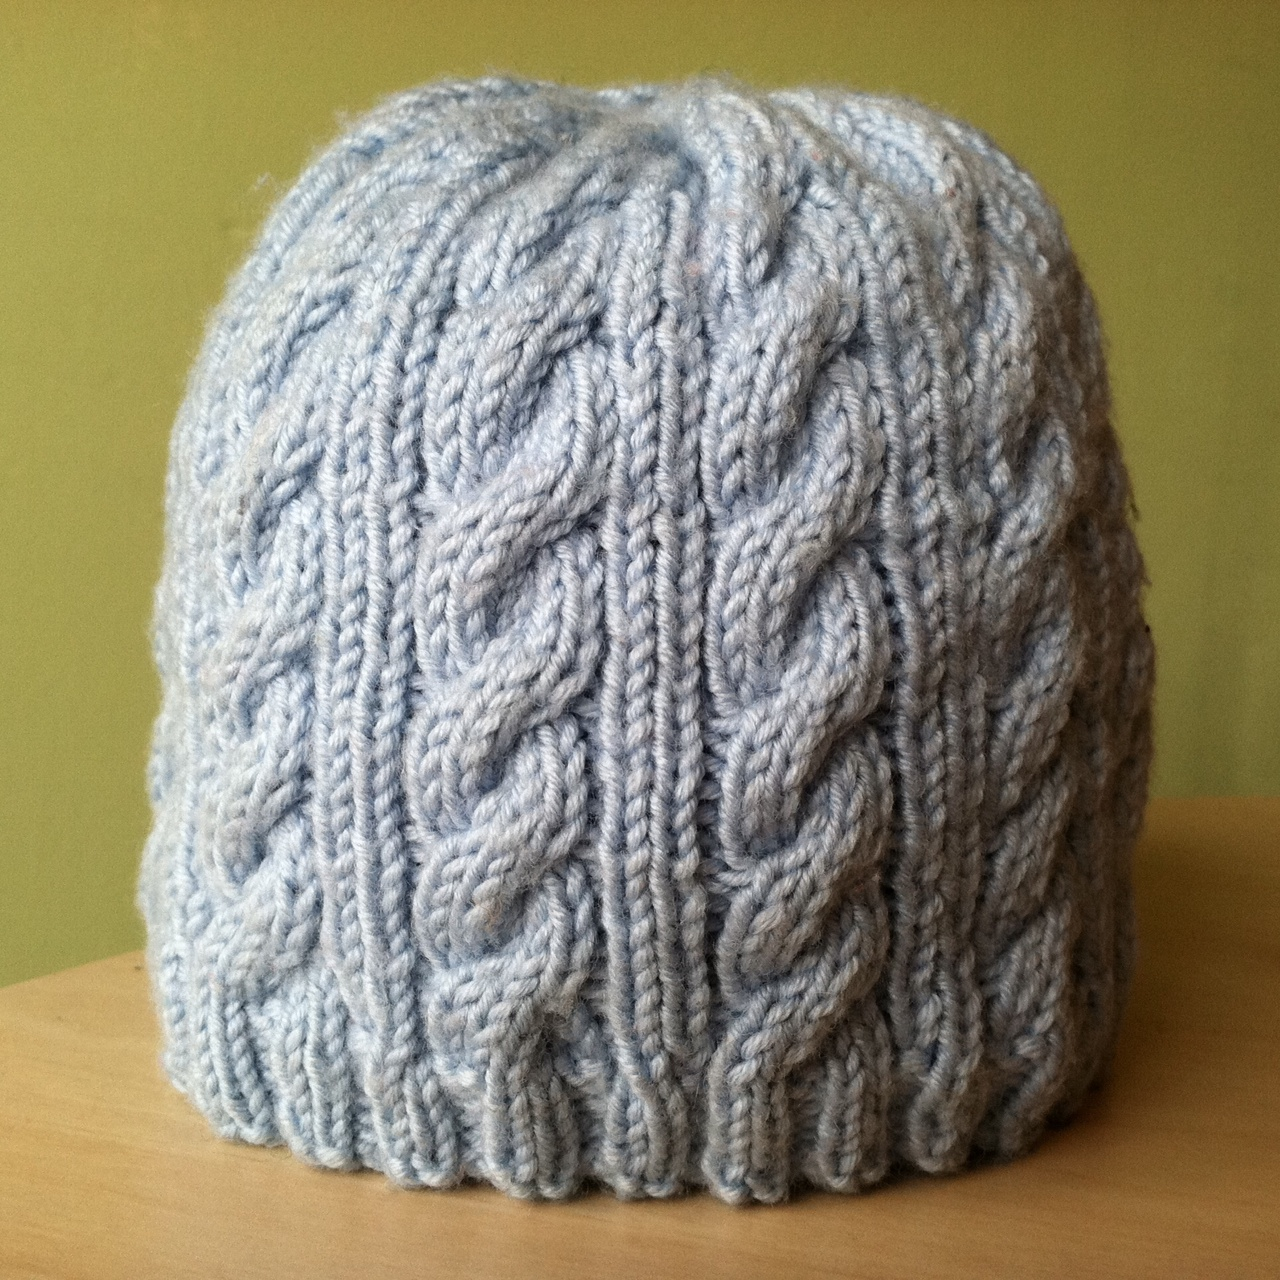 Sideways Knitting Patterns Free : The Yarn Garden Blog: Upcoming Class: Easy Baby Cable Knit Hat